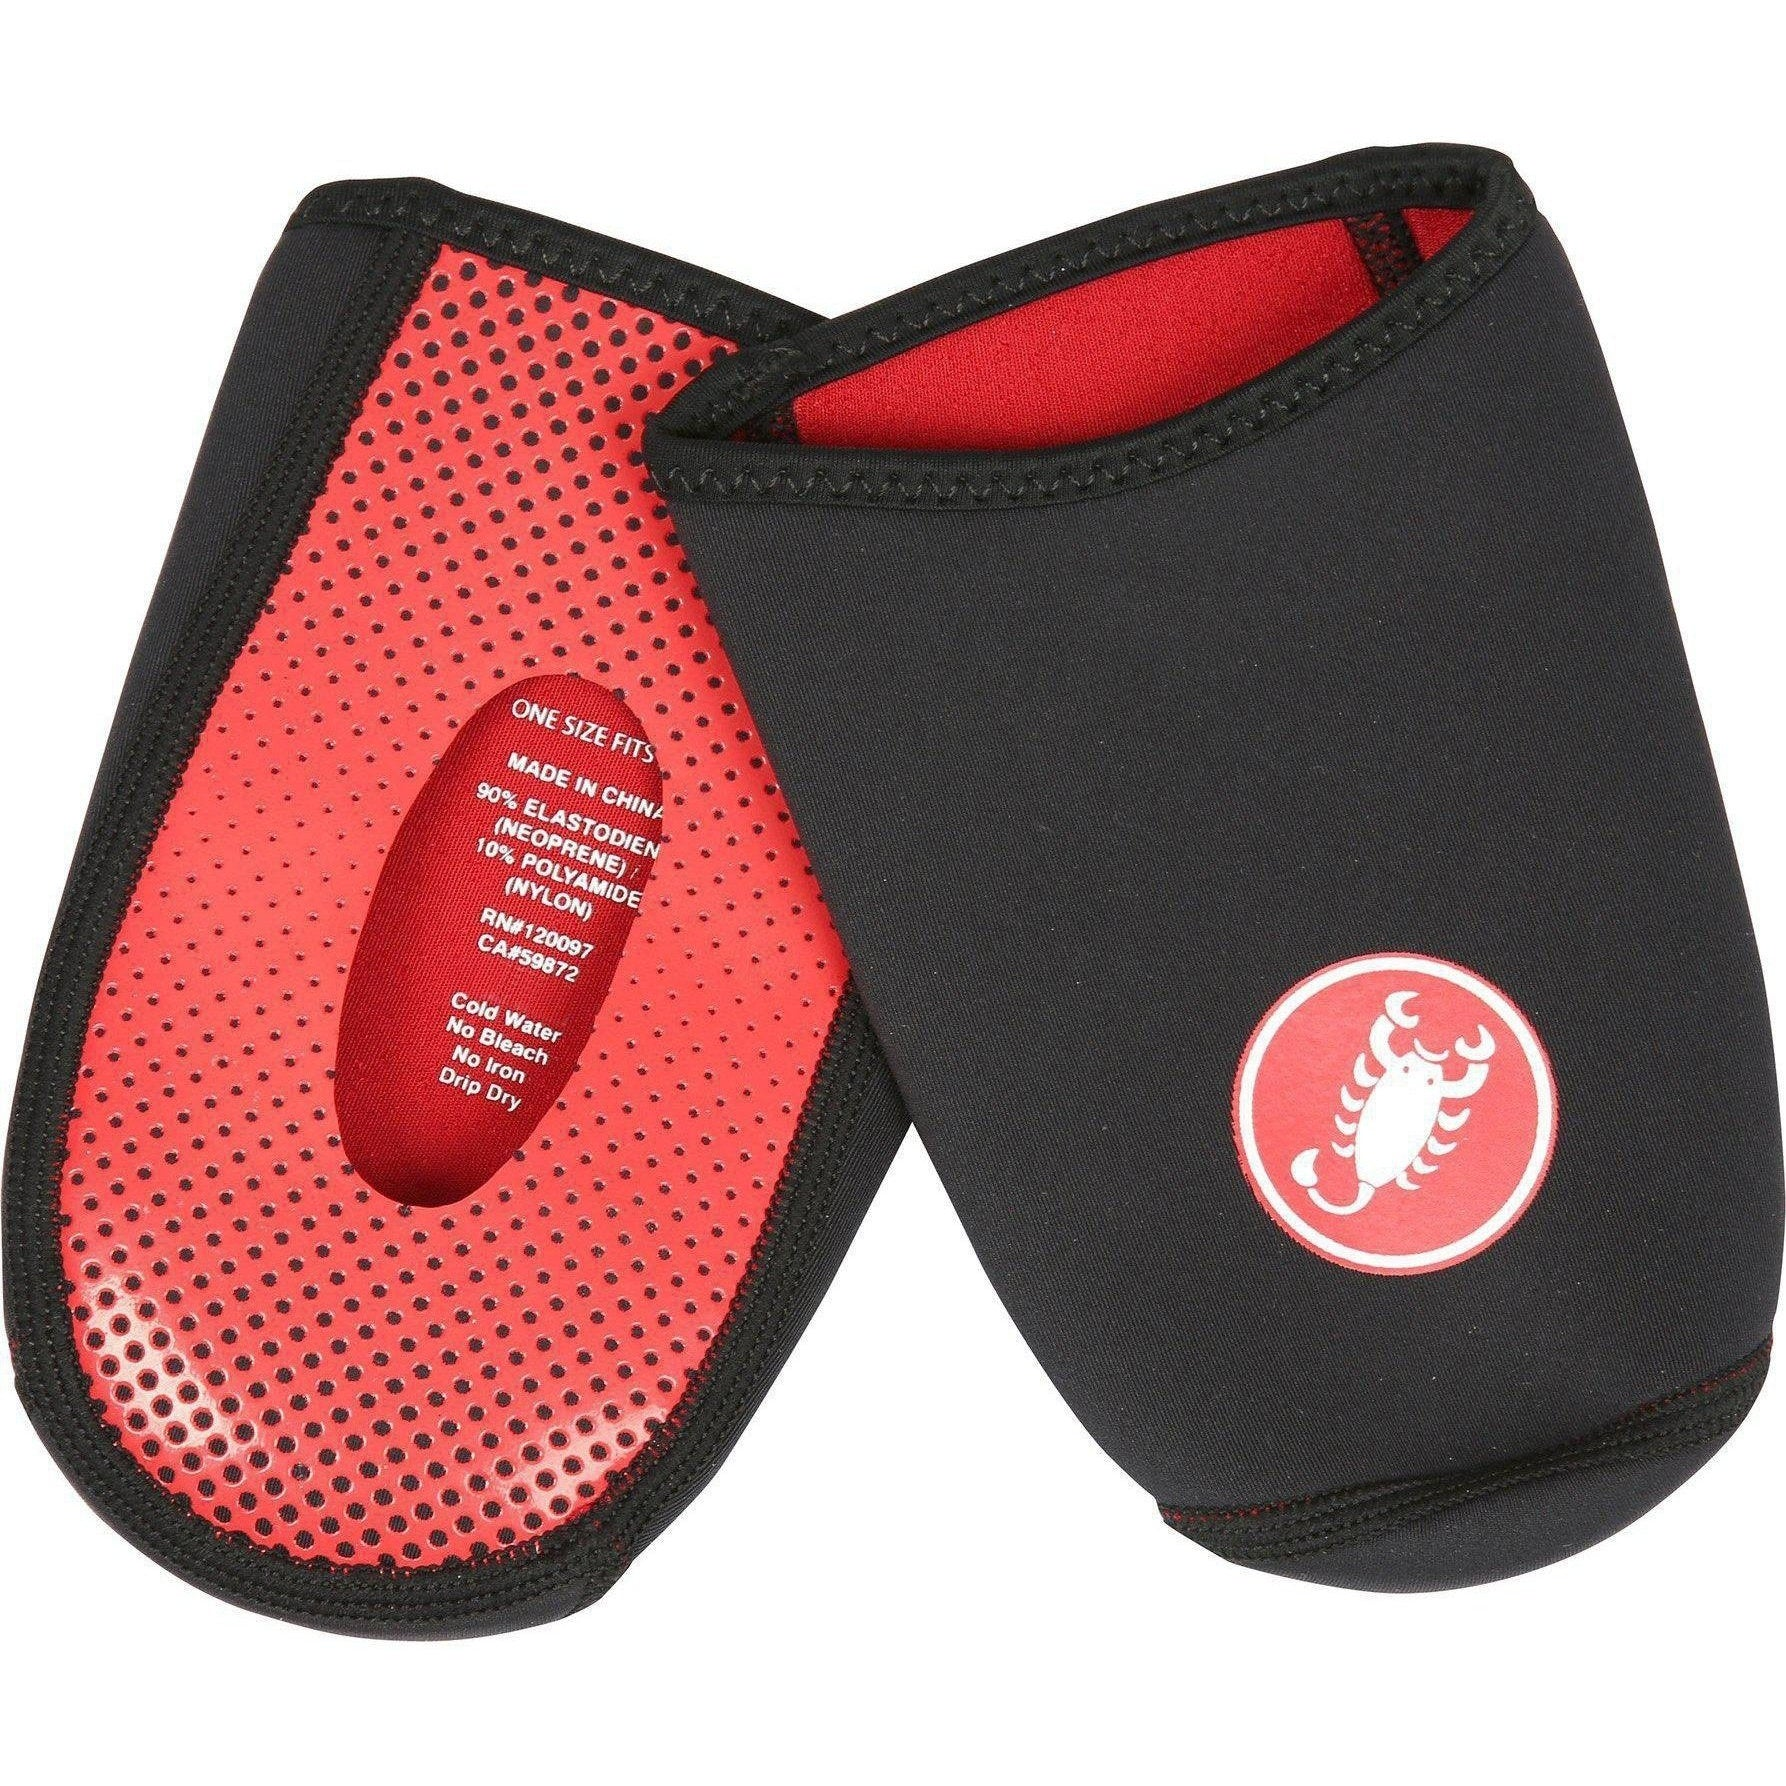 Overshoes - Castelli Toe Thingy 2